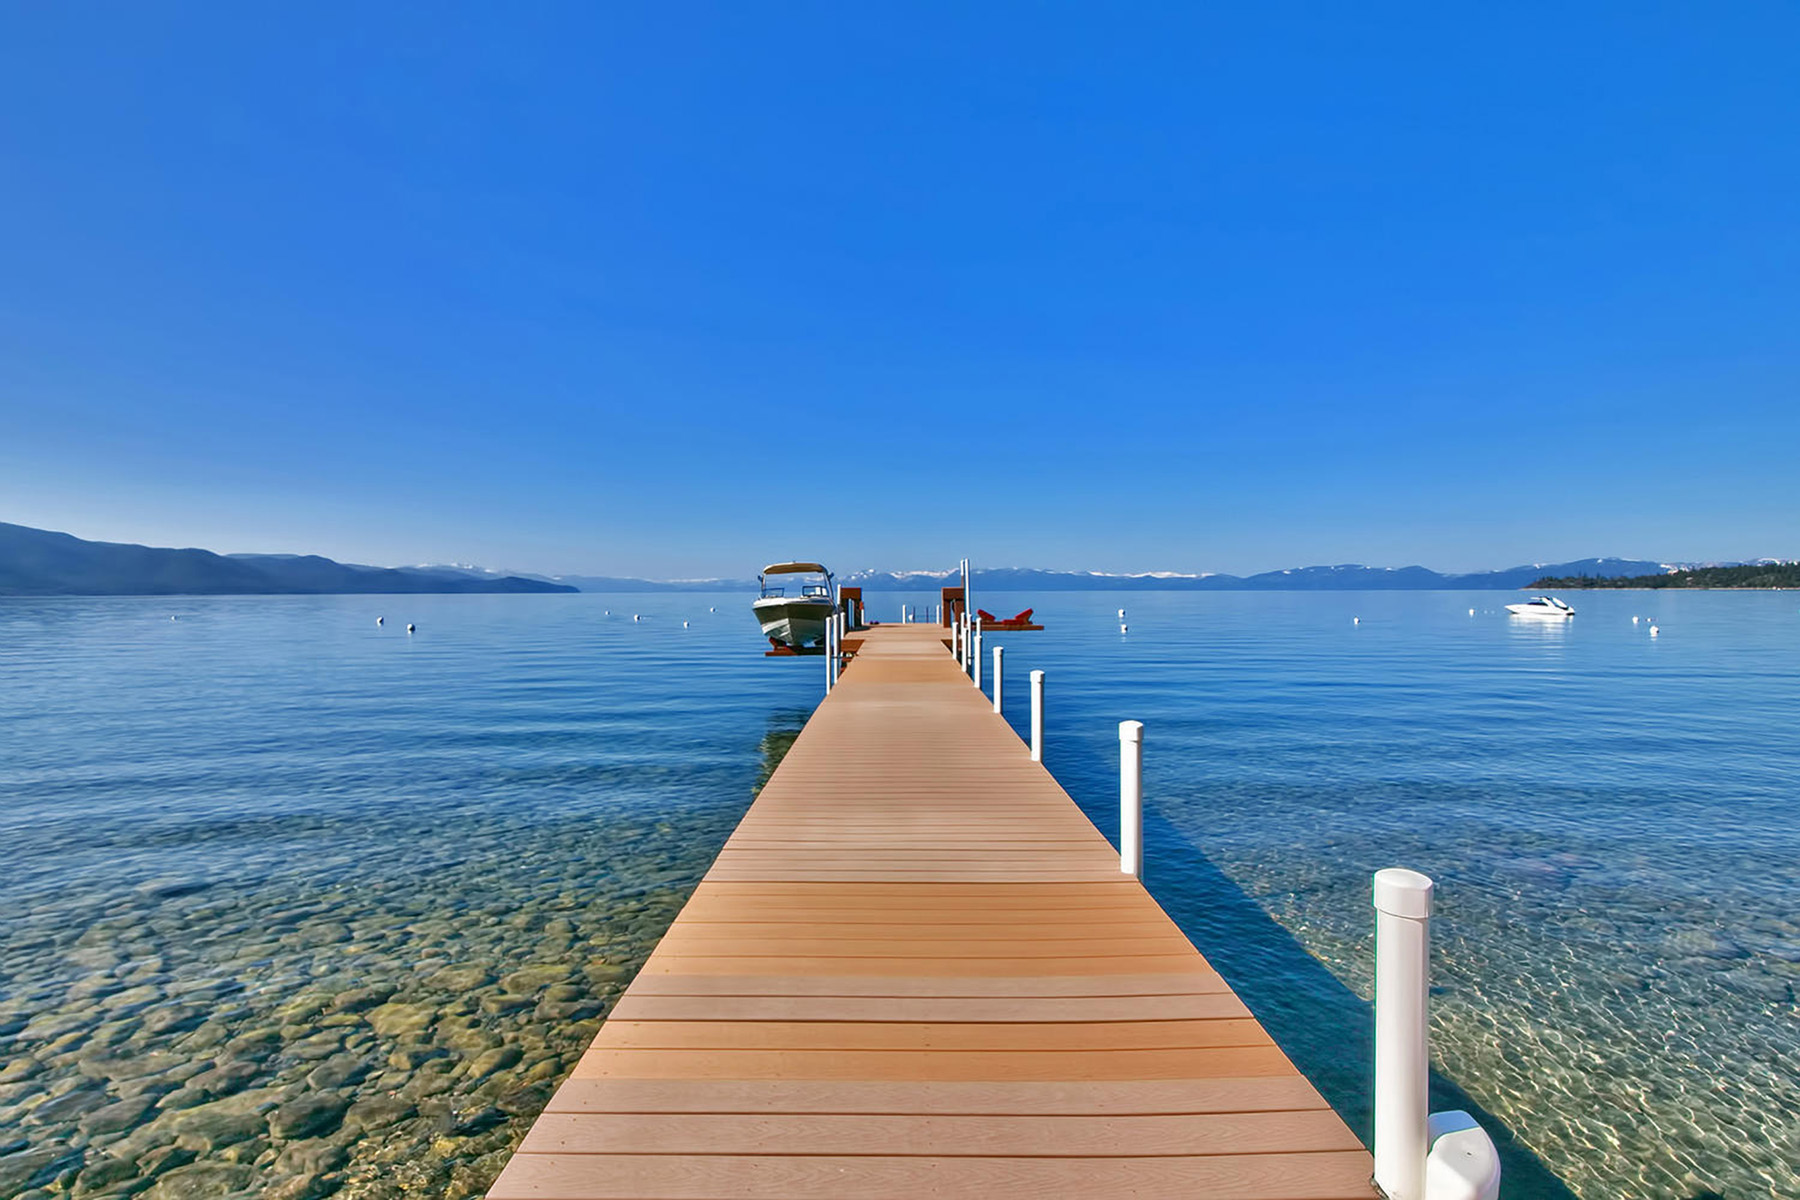 단독 가정 주택 용 매매 에 North Shore Lake Tahoe 825 Lakeshore Boulevard Incline Village, 네바다, 89451 Lake Tahoe, 미국